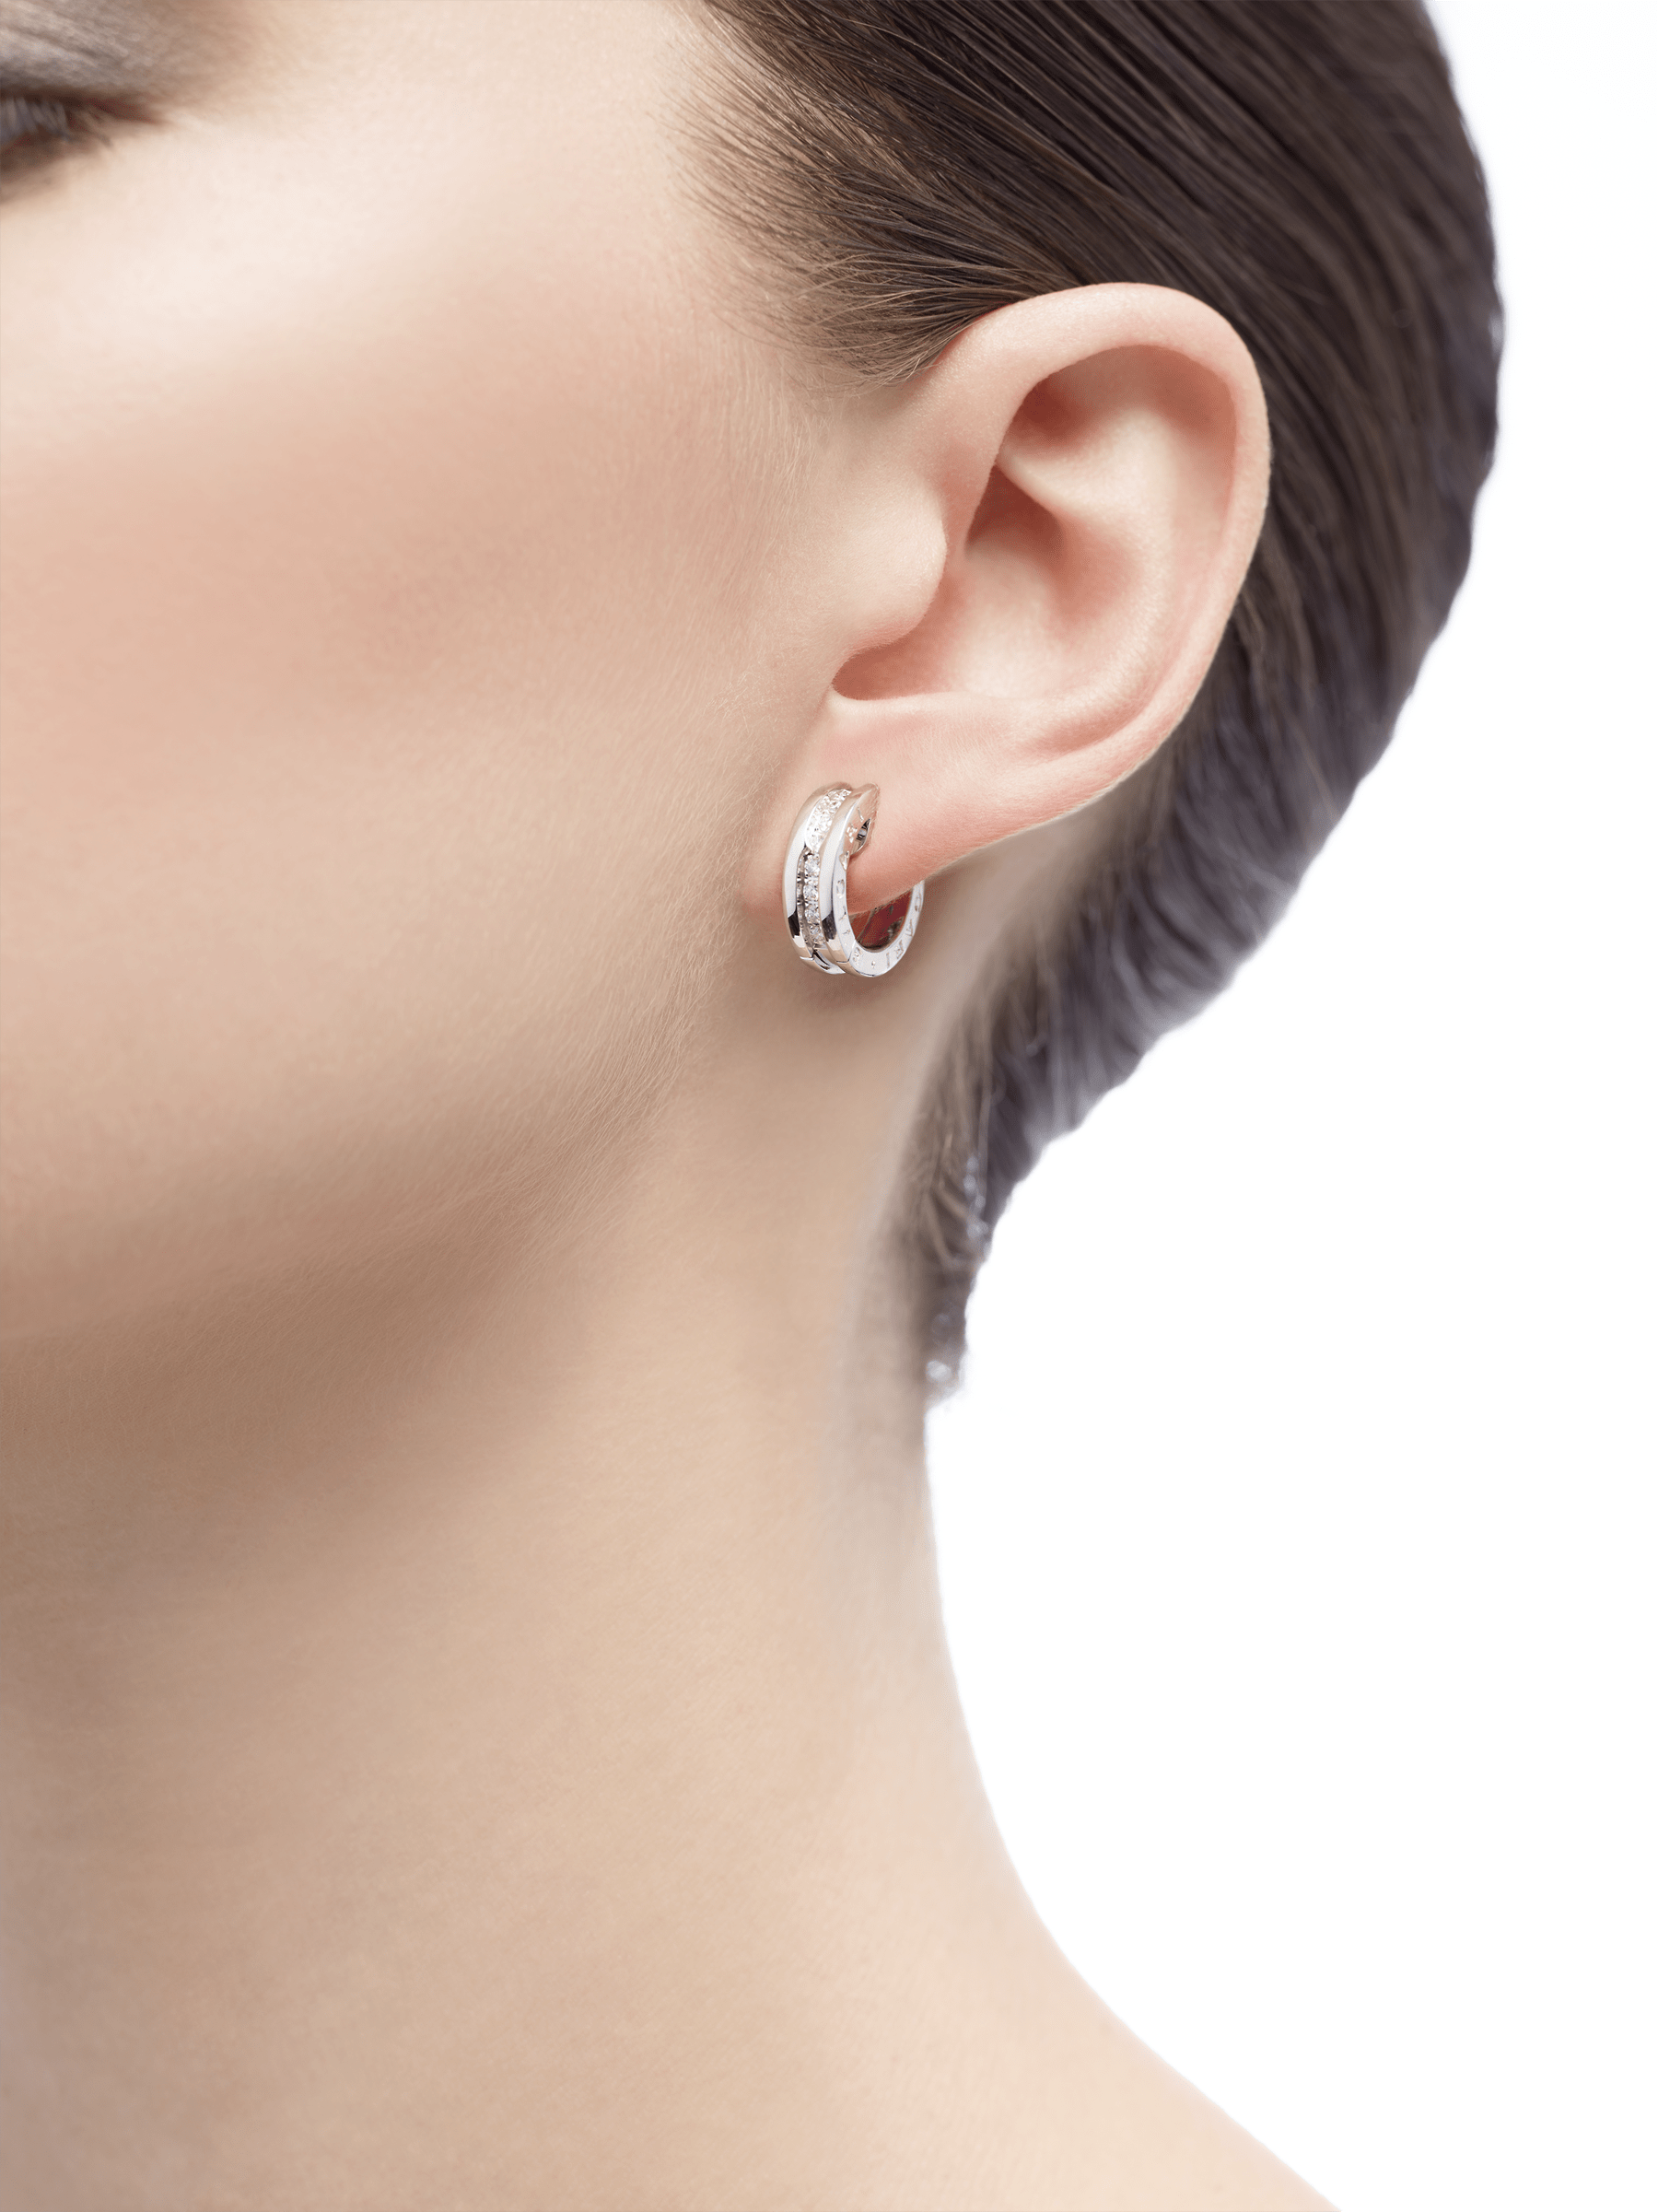 B.zero1 small hoop earrings in 18kt white gold set with pavé diamond. 345581 image 3